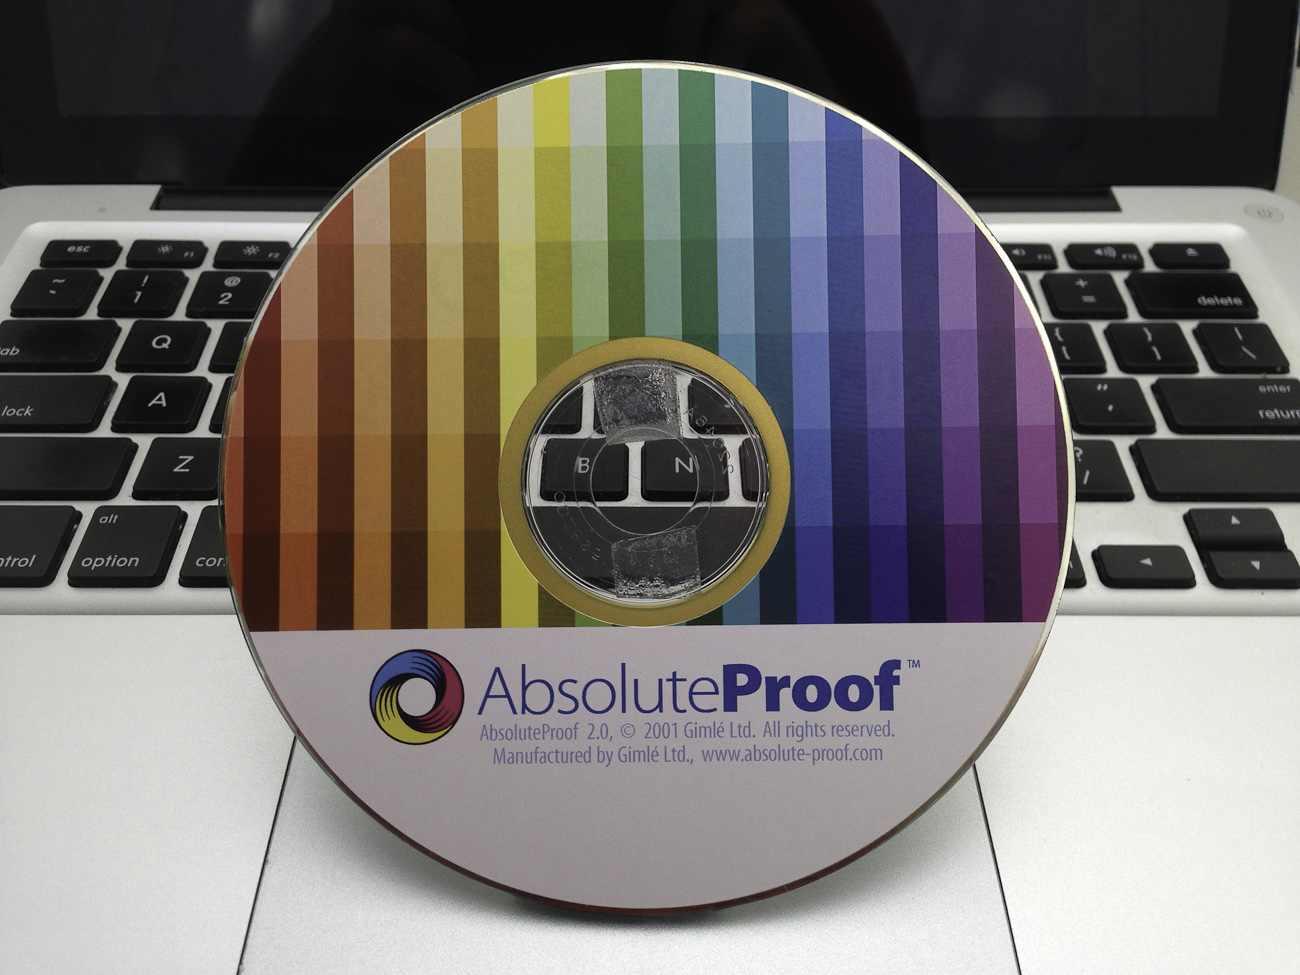 AbsoluteProof software disk label, second iteration